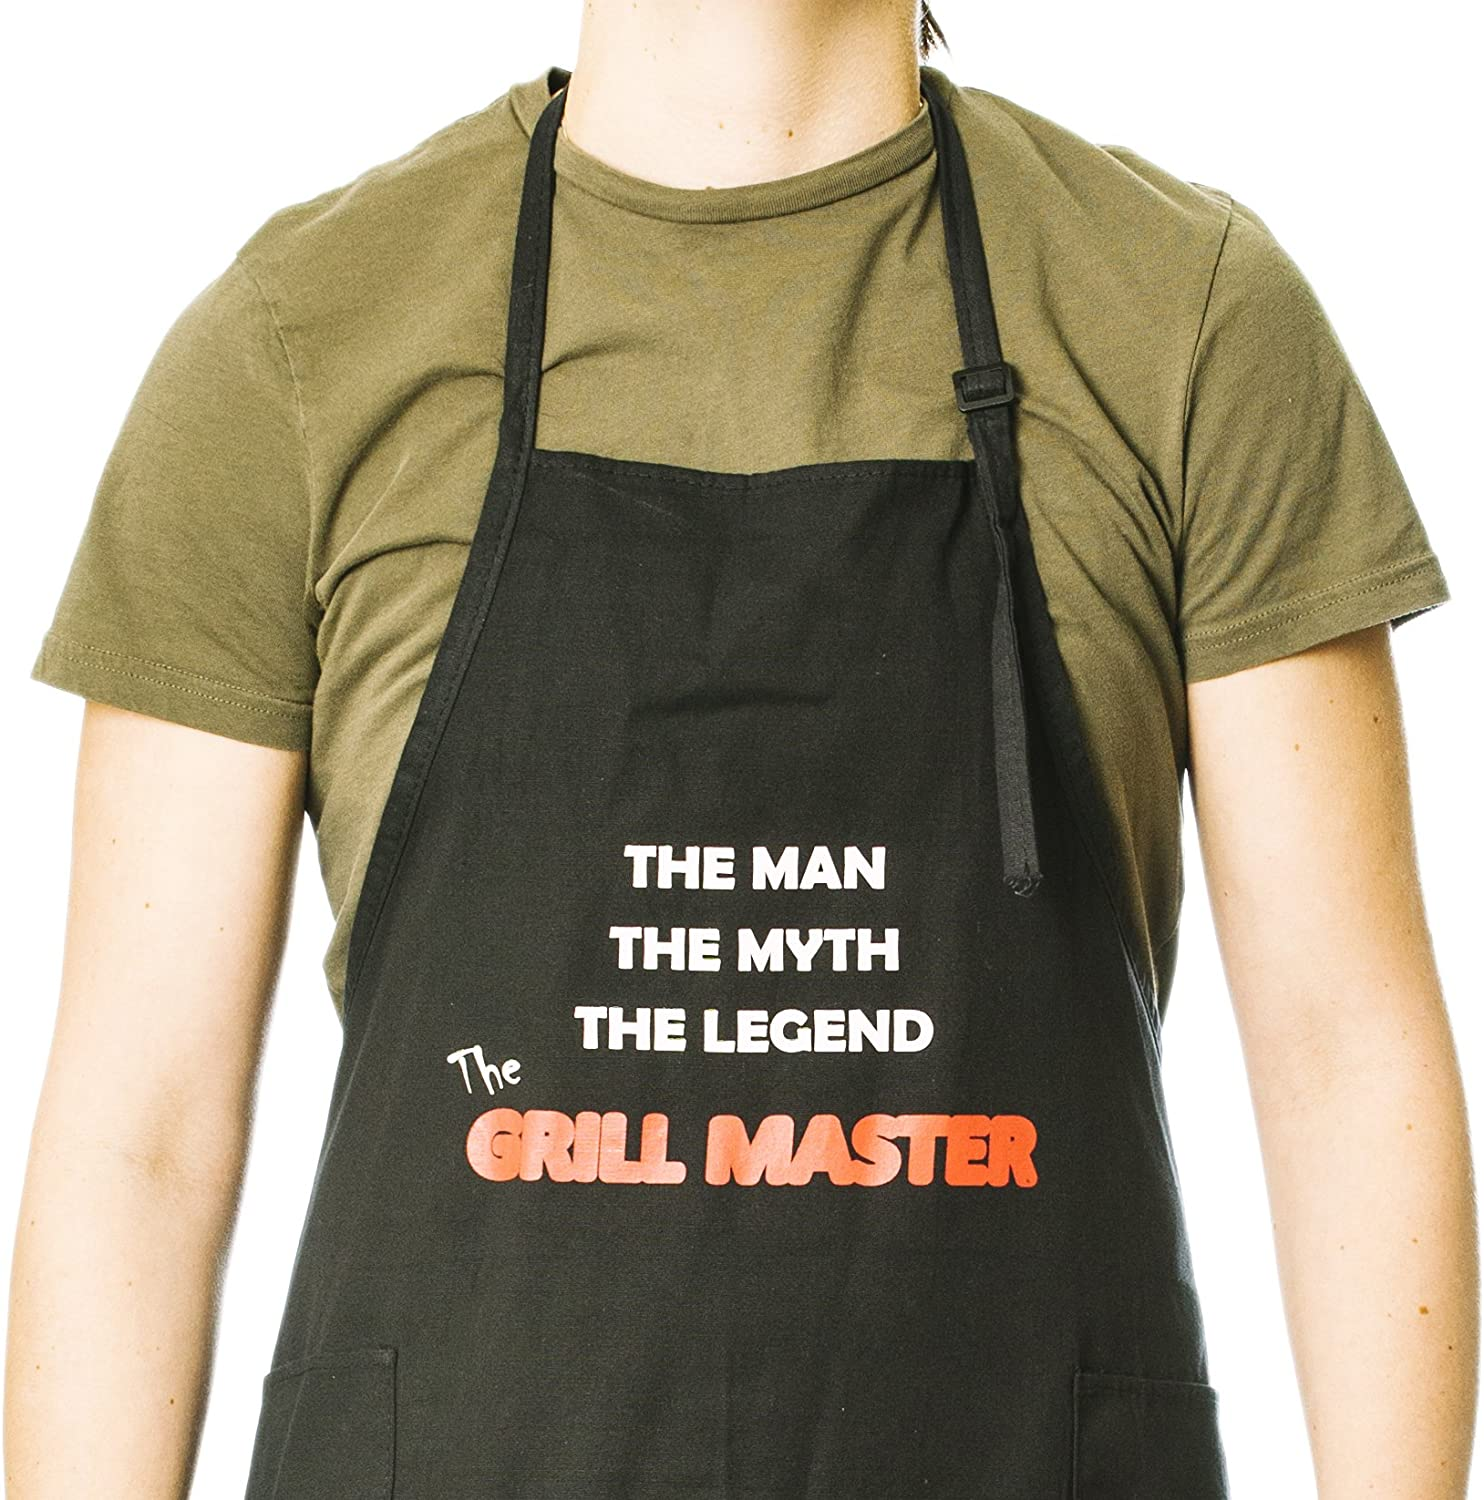 Funny Apron for Men and Women Perfect for BBQ Grilling Barbecue Cooking Baking Funny Guy Mugs Grill Master Adjustable Apron with Pockets